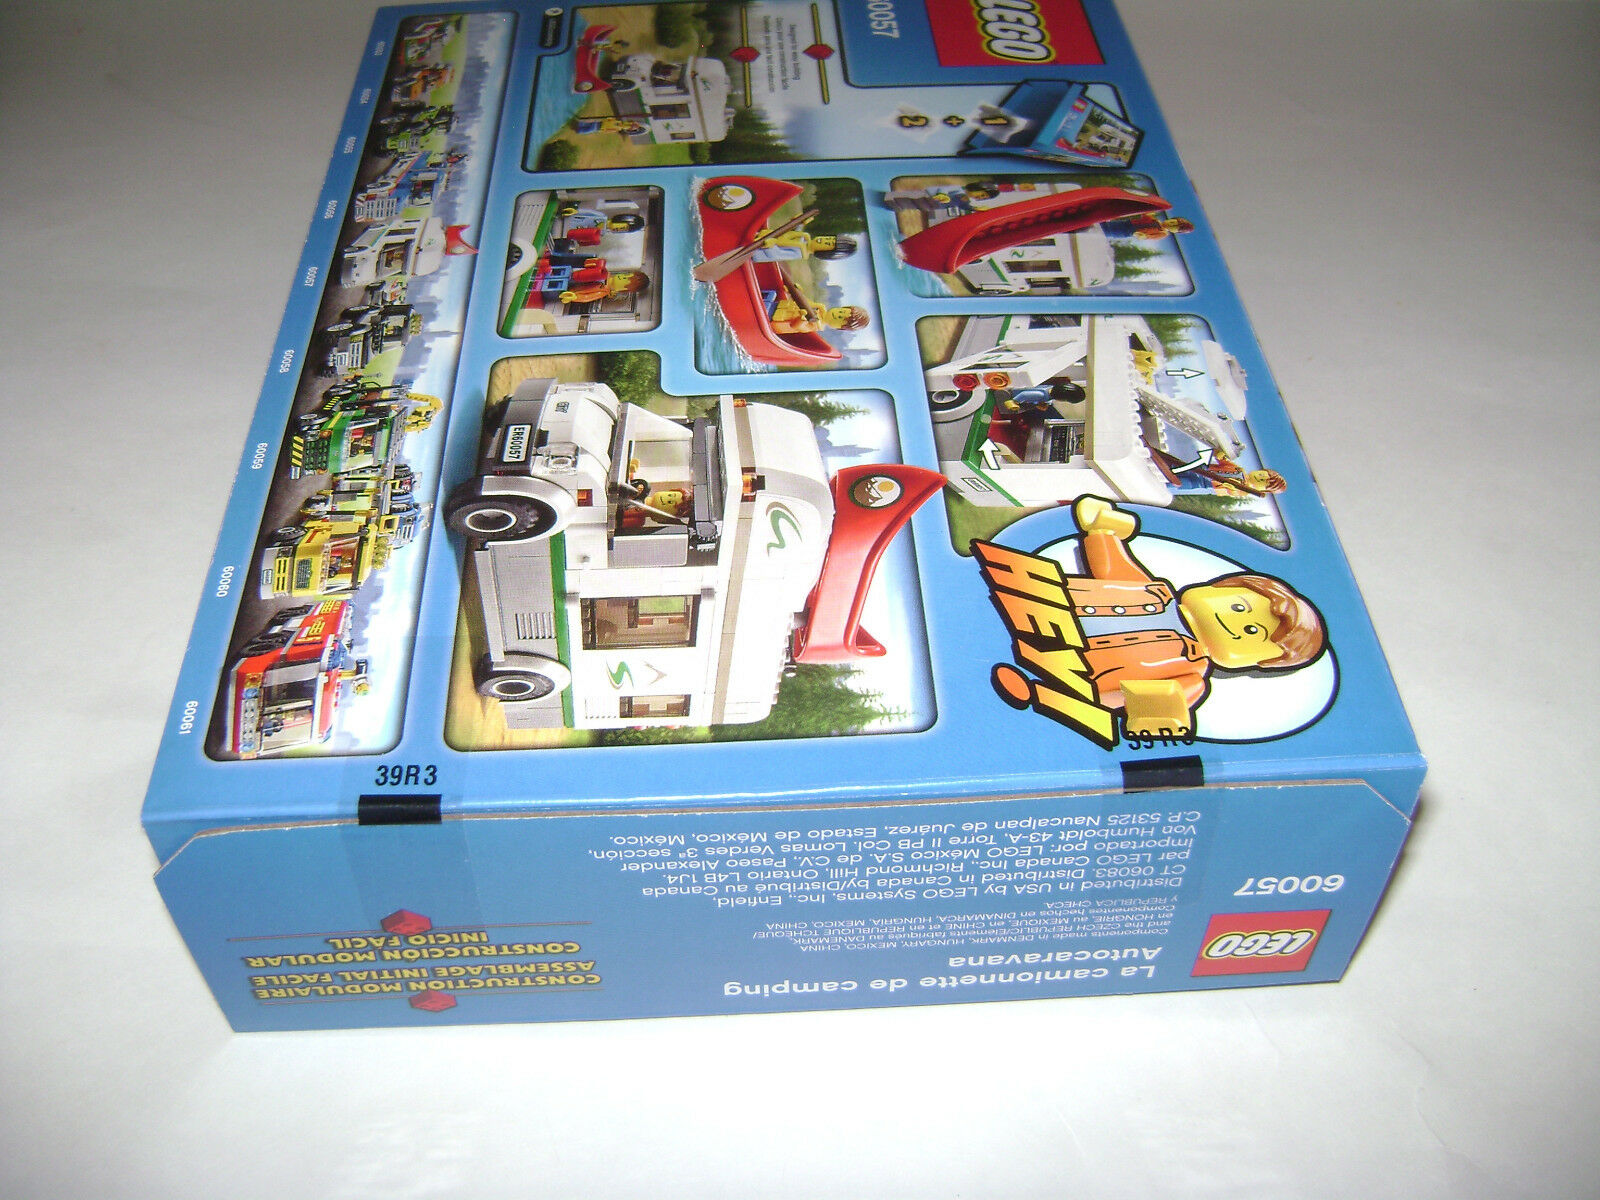 NEW 60057 Lego CITY Camper Van Building Toy SEALED BOX BOX BOX RETIRED RARE A 7e1b30